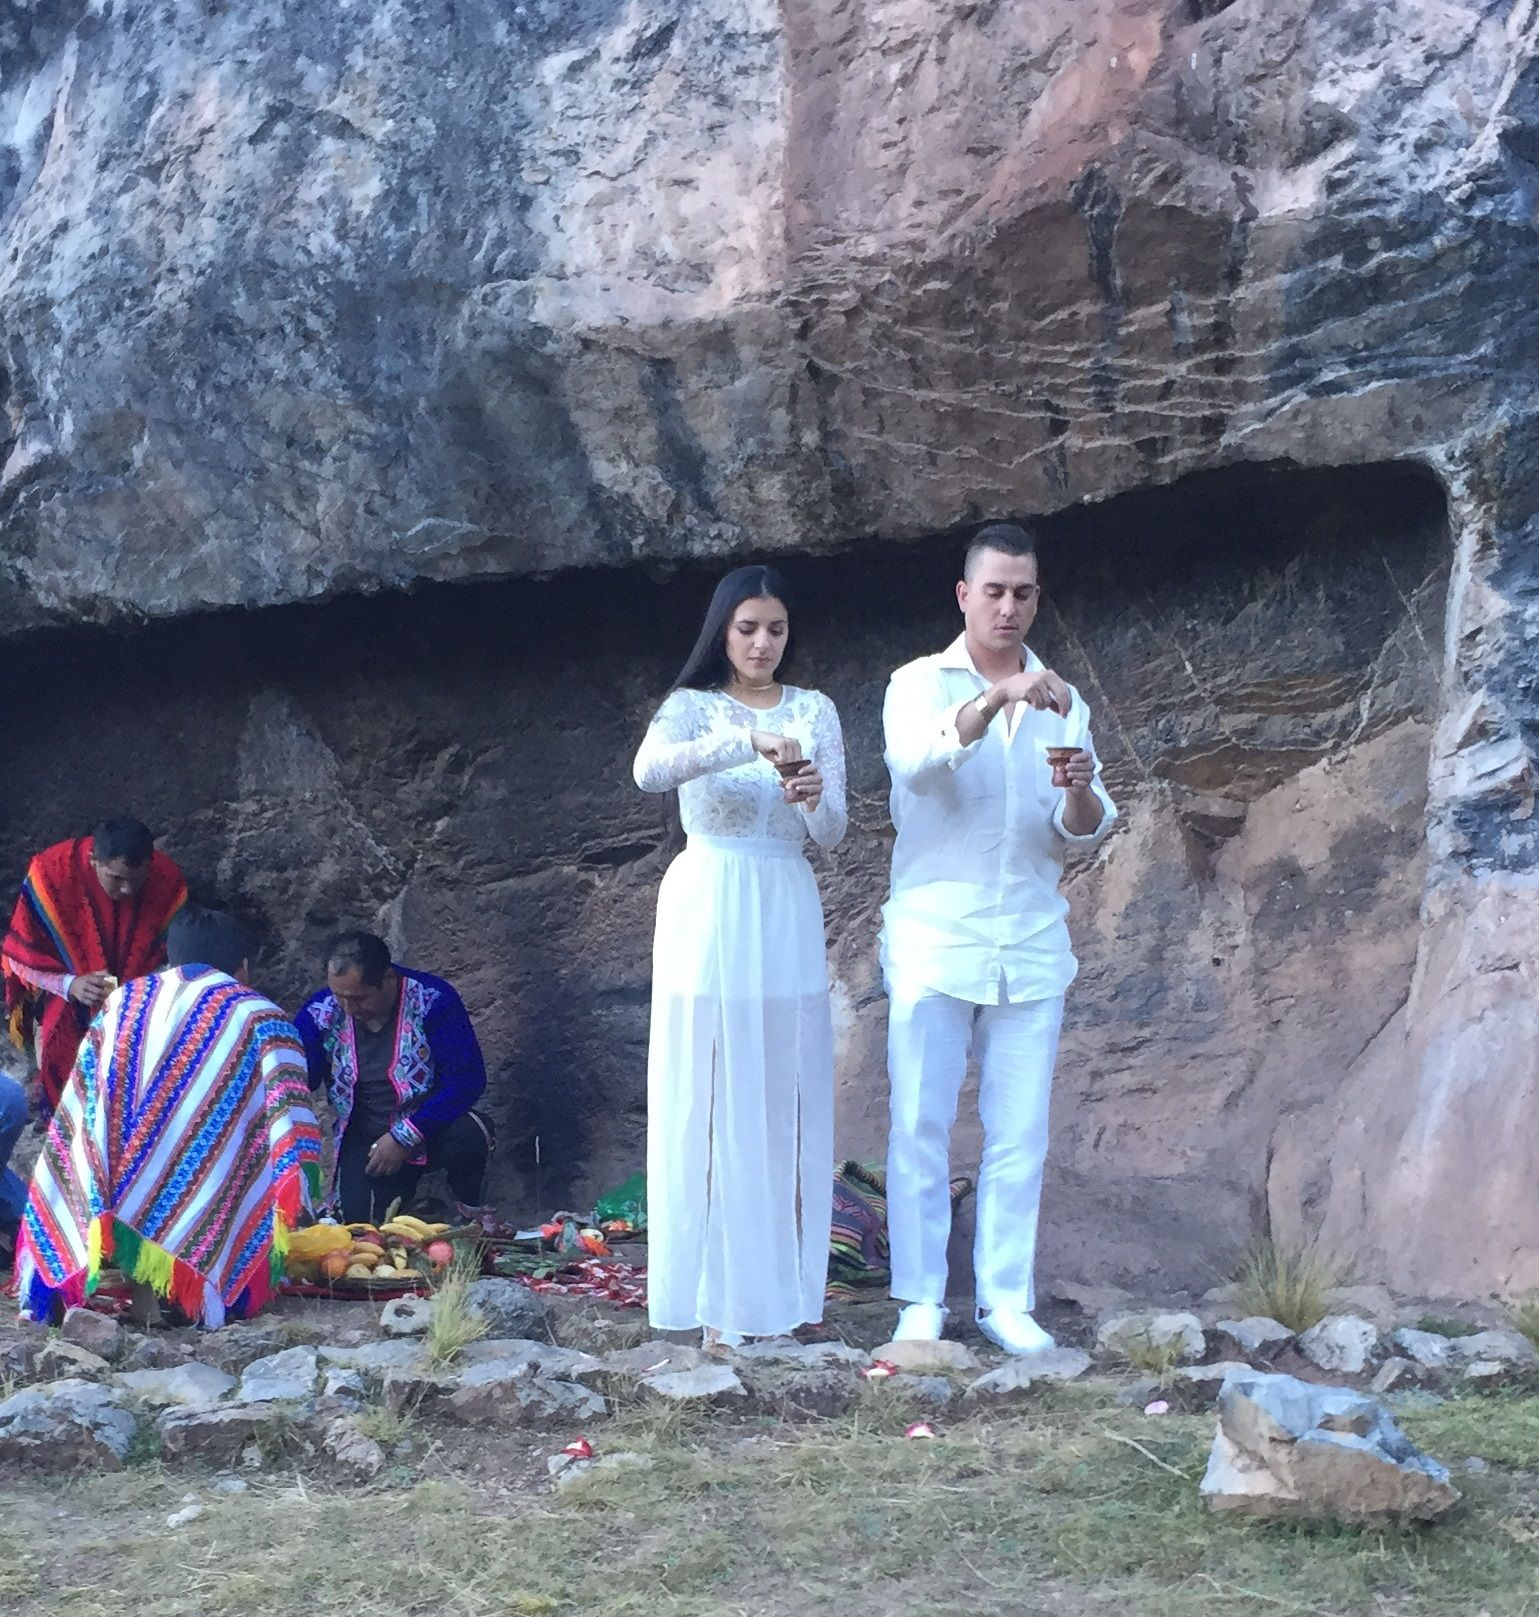 Adventure Wedding Ceremony Includes Sacred Coca Leaves And Chicha Beer On Your Way To Machu Picchu